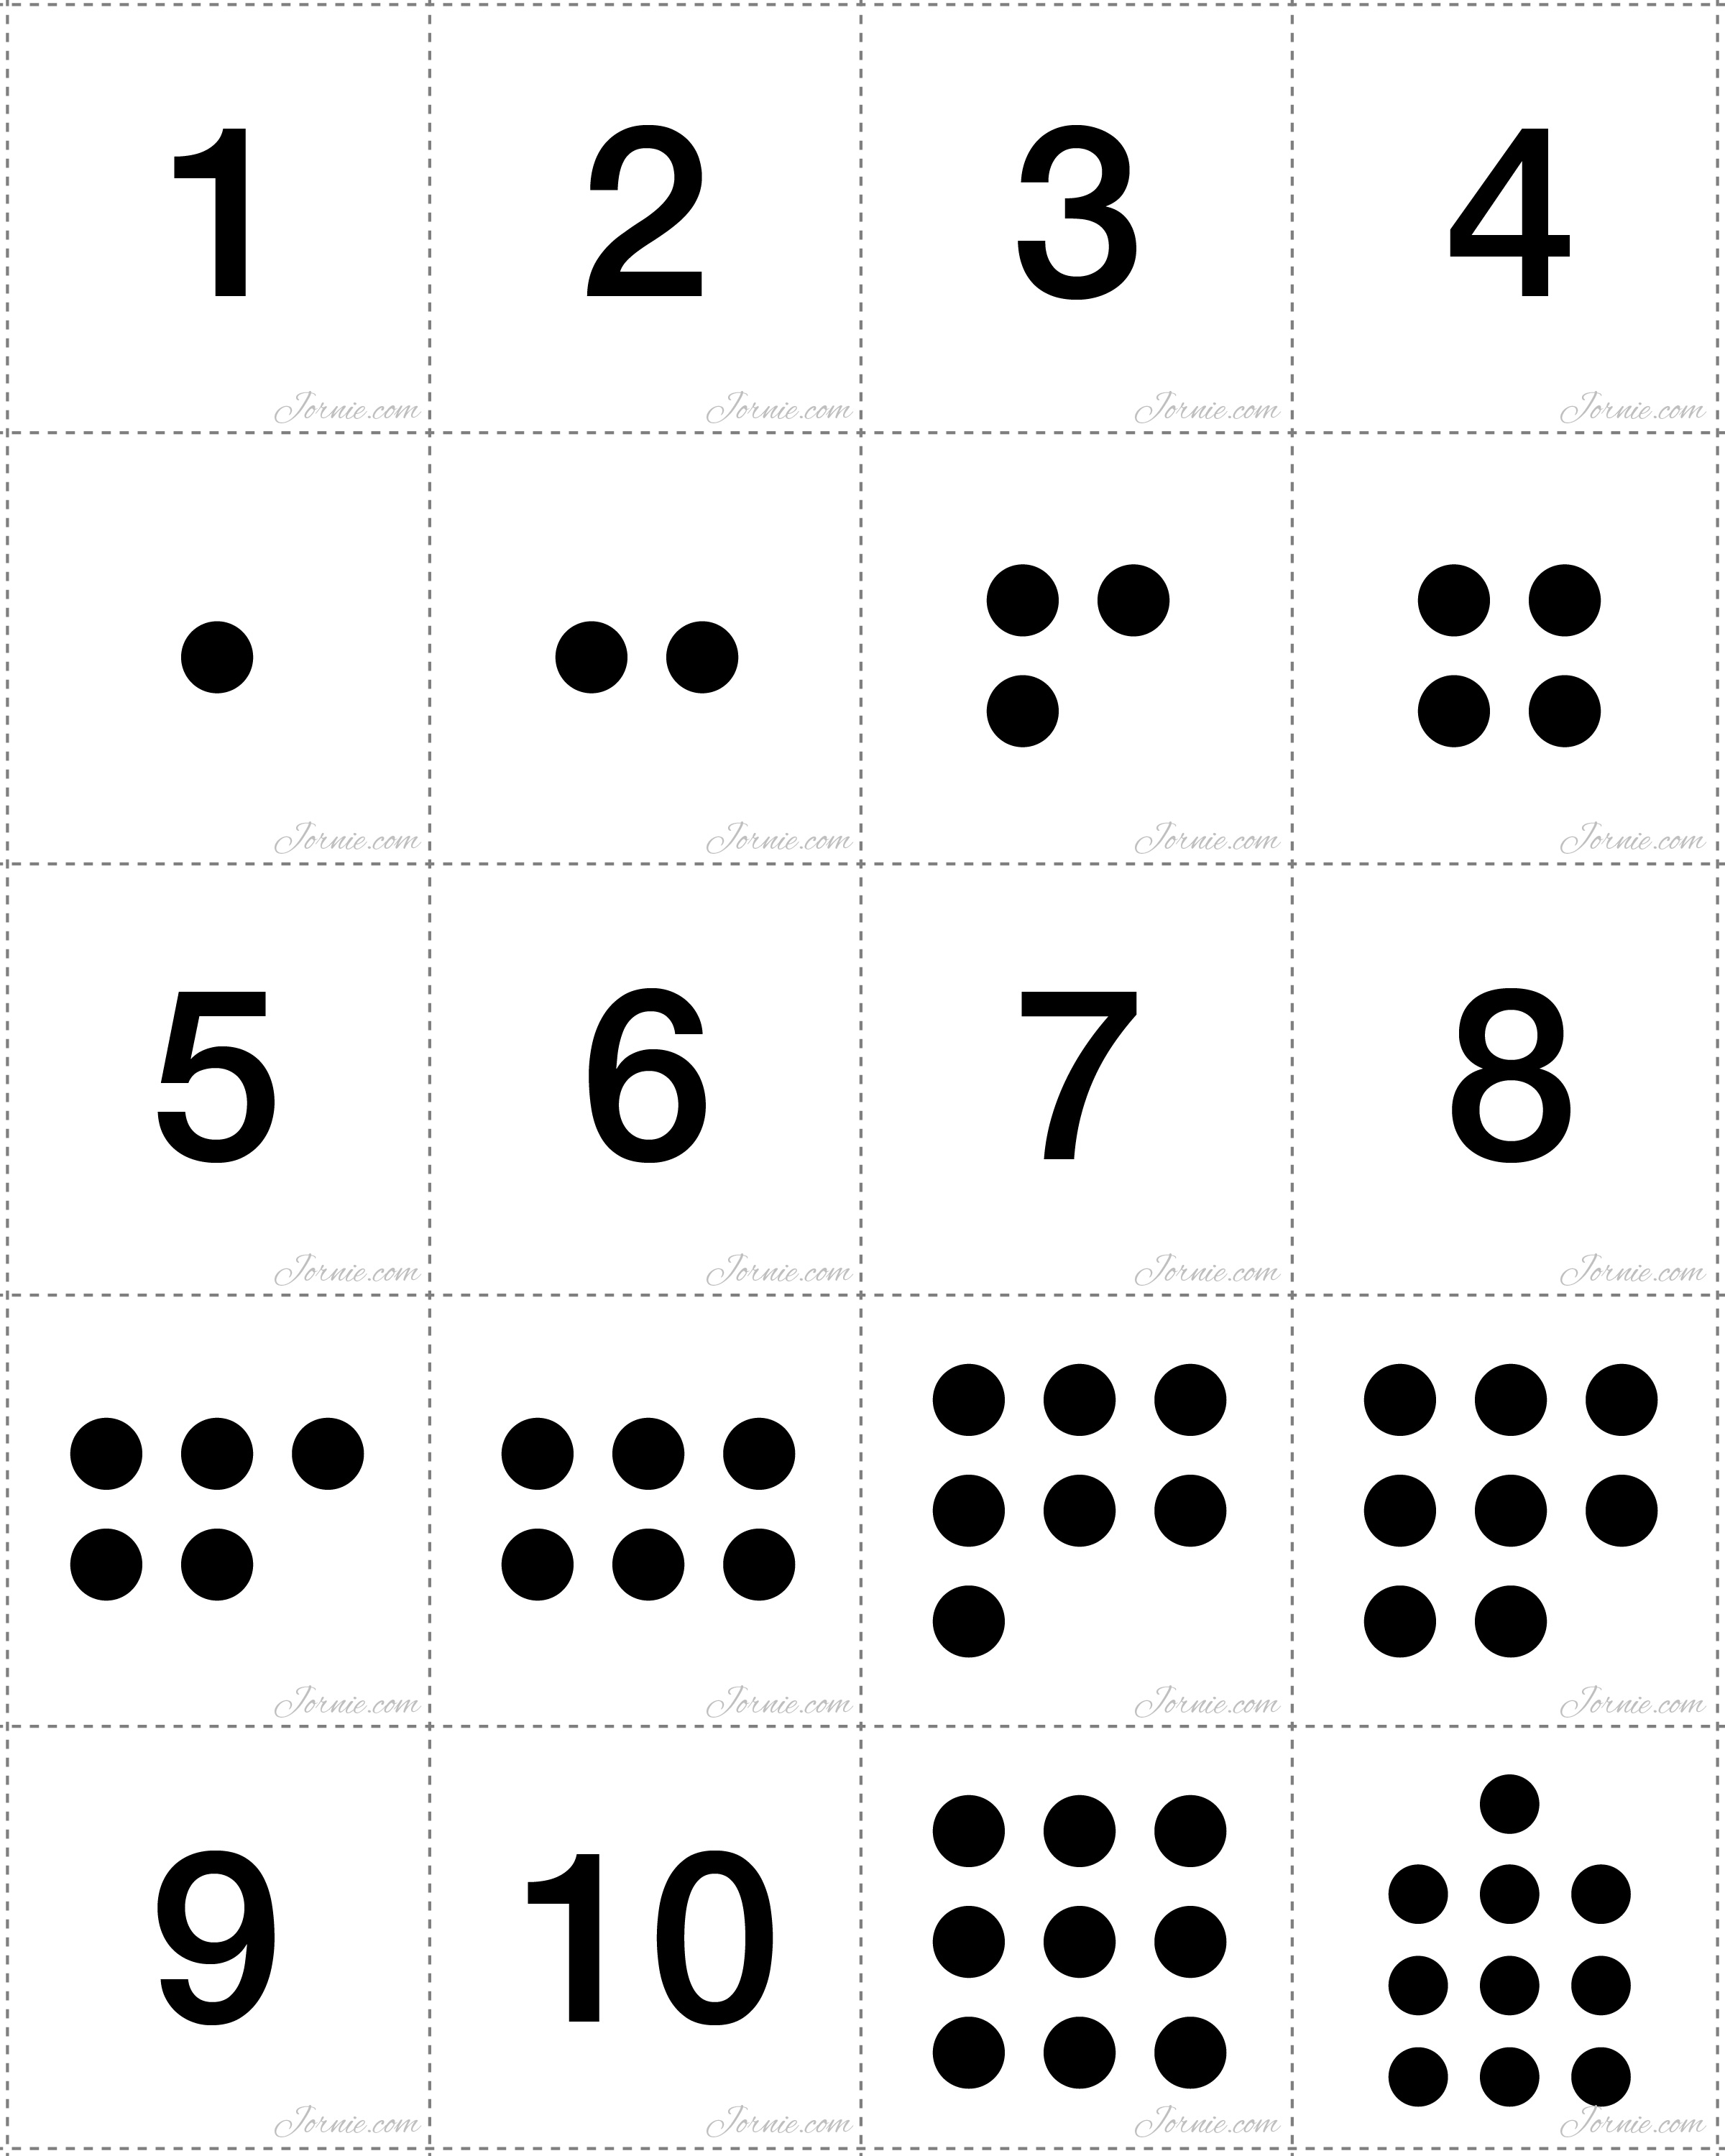 4 Images of Printable Number Matching Cards